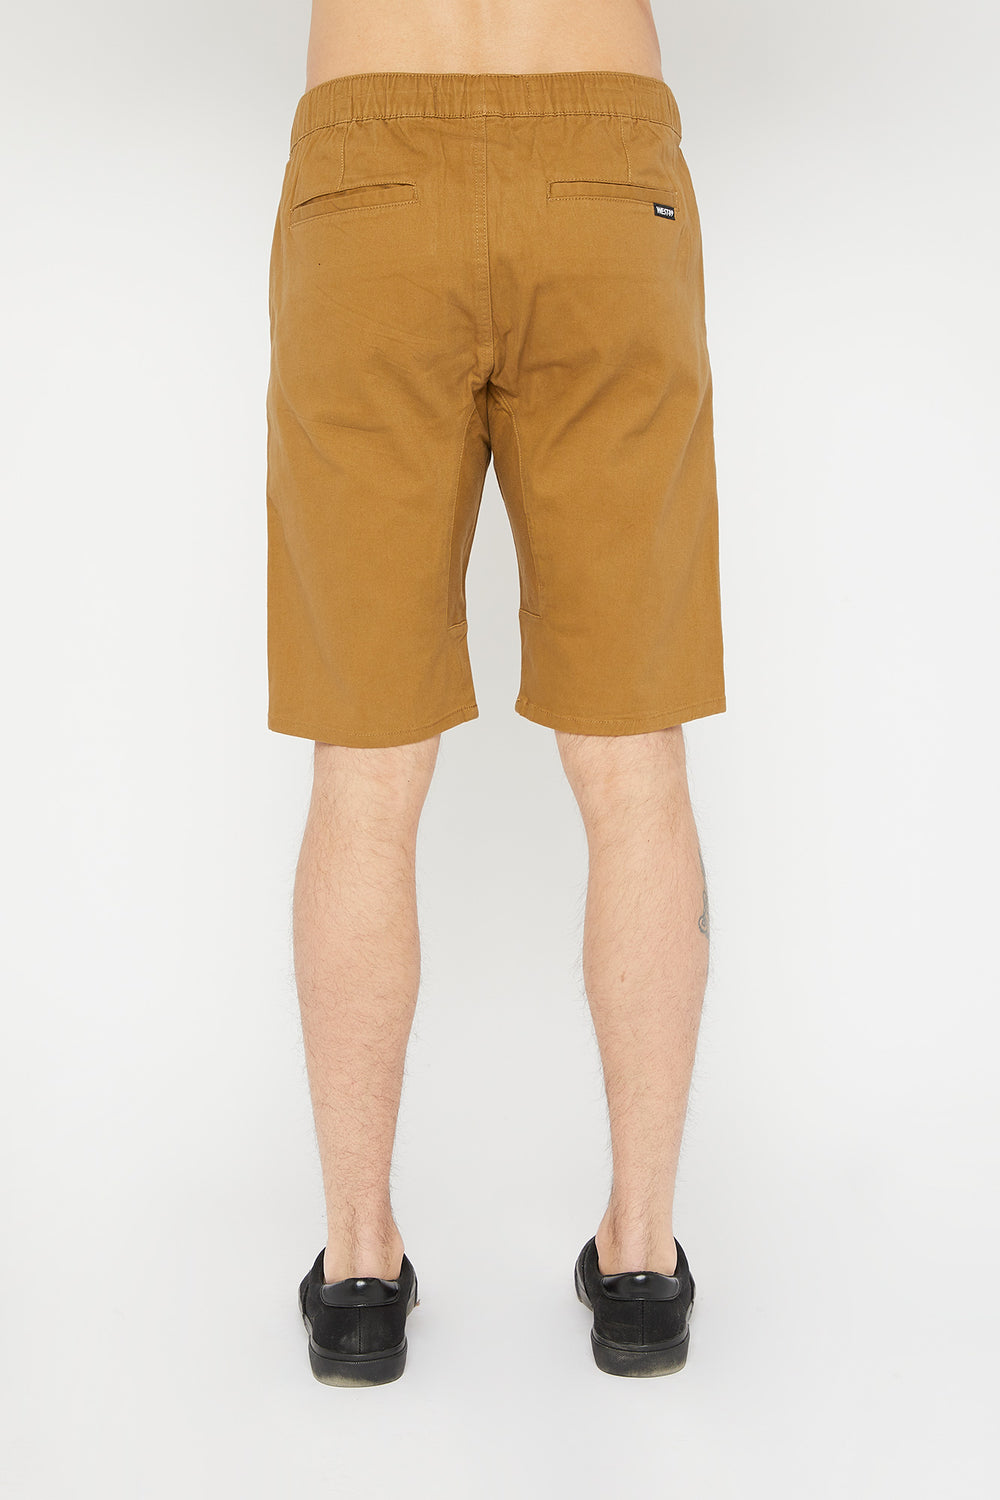 West49 Mens Solid Twill Jogger Short Tan